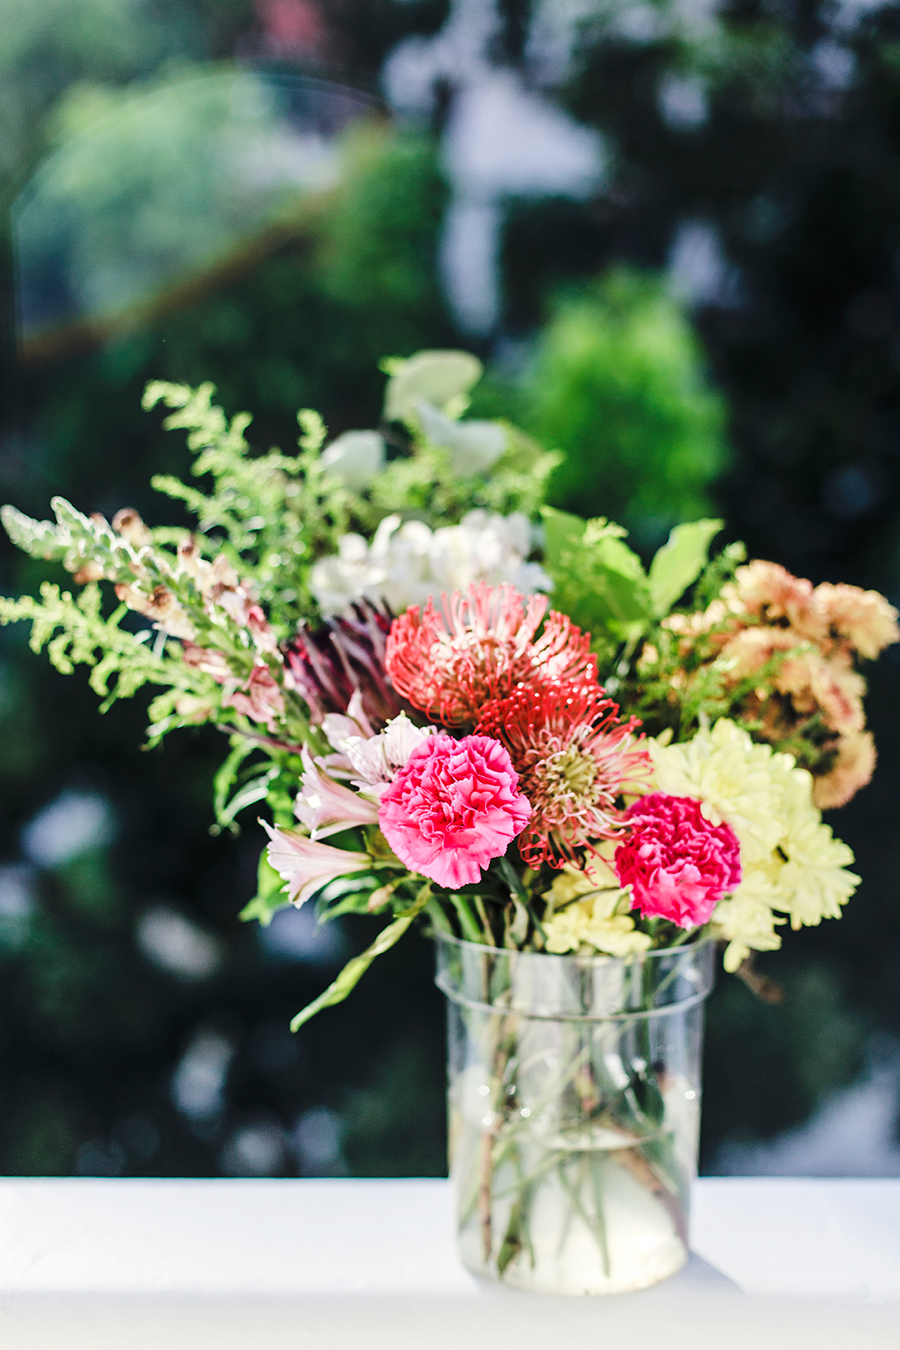 The Sylvia flower bouquet from A Better Florist.